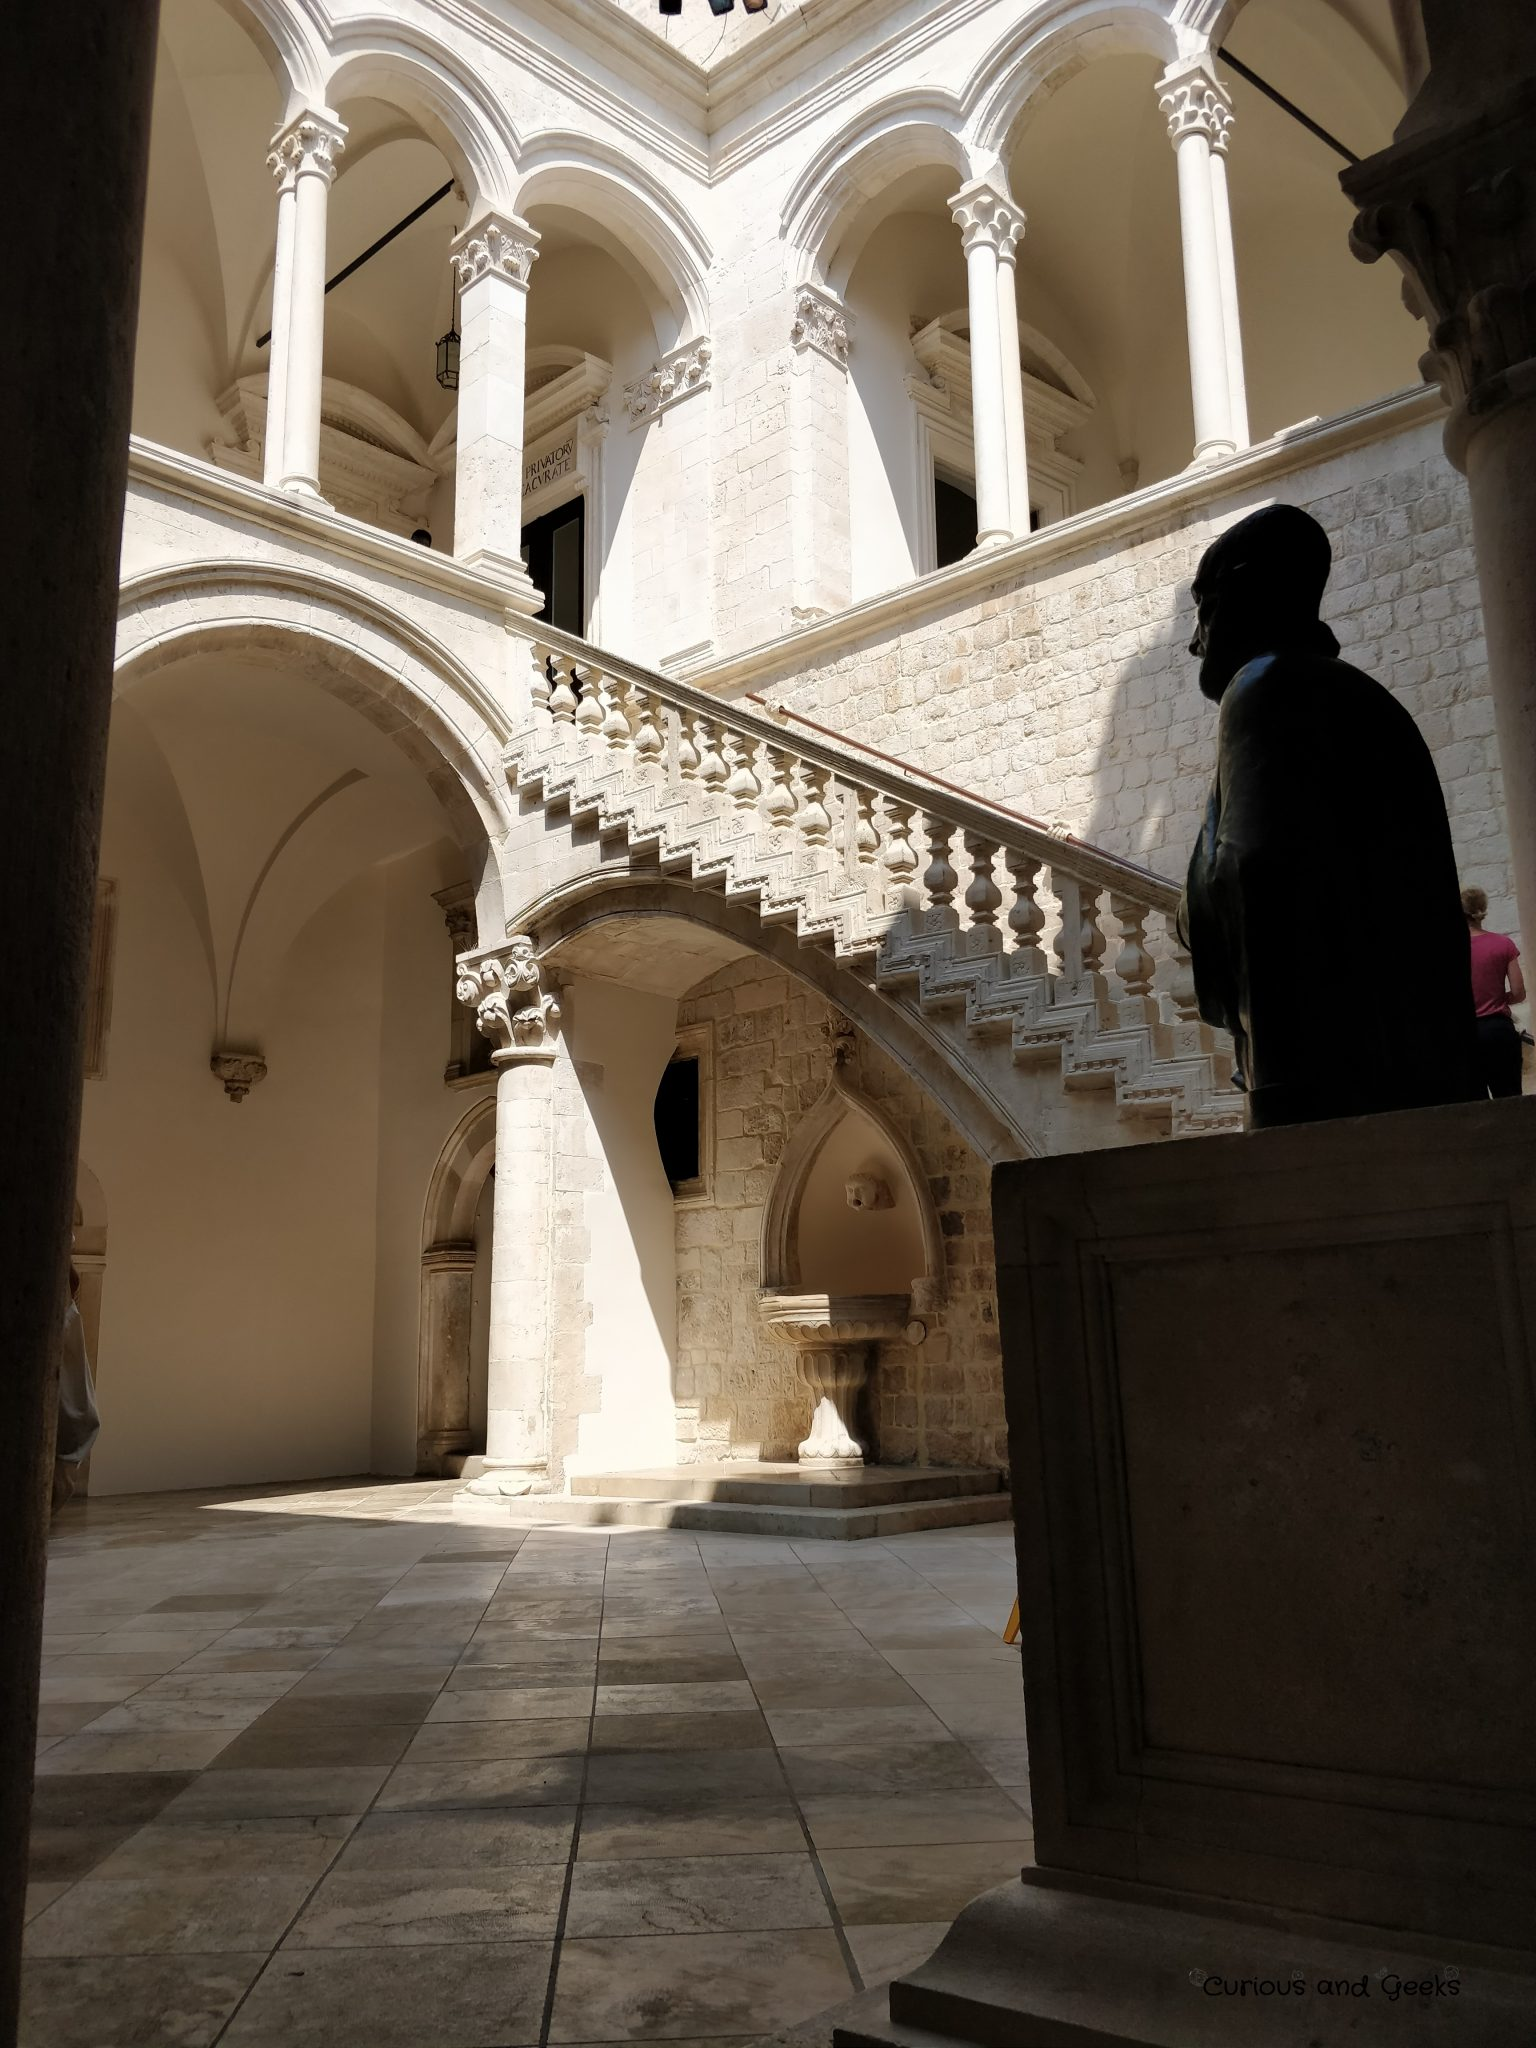 12. The Rectors Palace - Game of Thrones filming locations in Dubrovnik